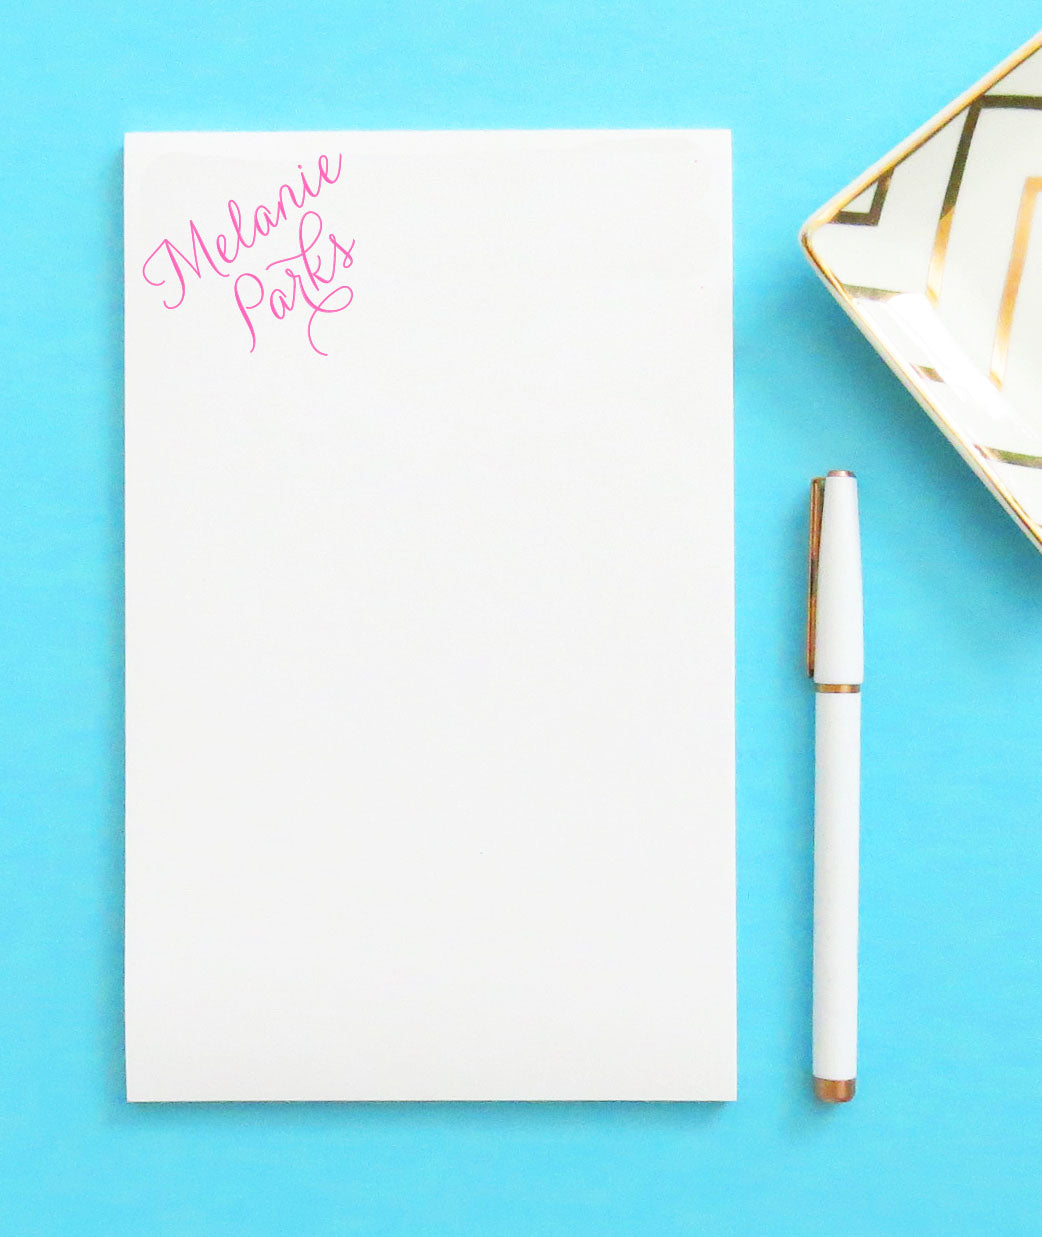 Personalized Corner Script Personalized Note Pads for Women